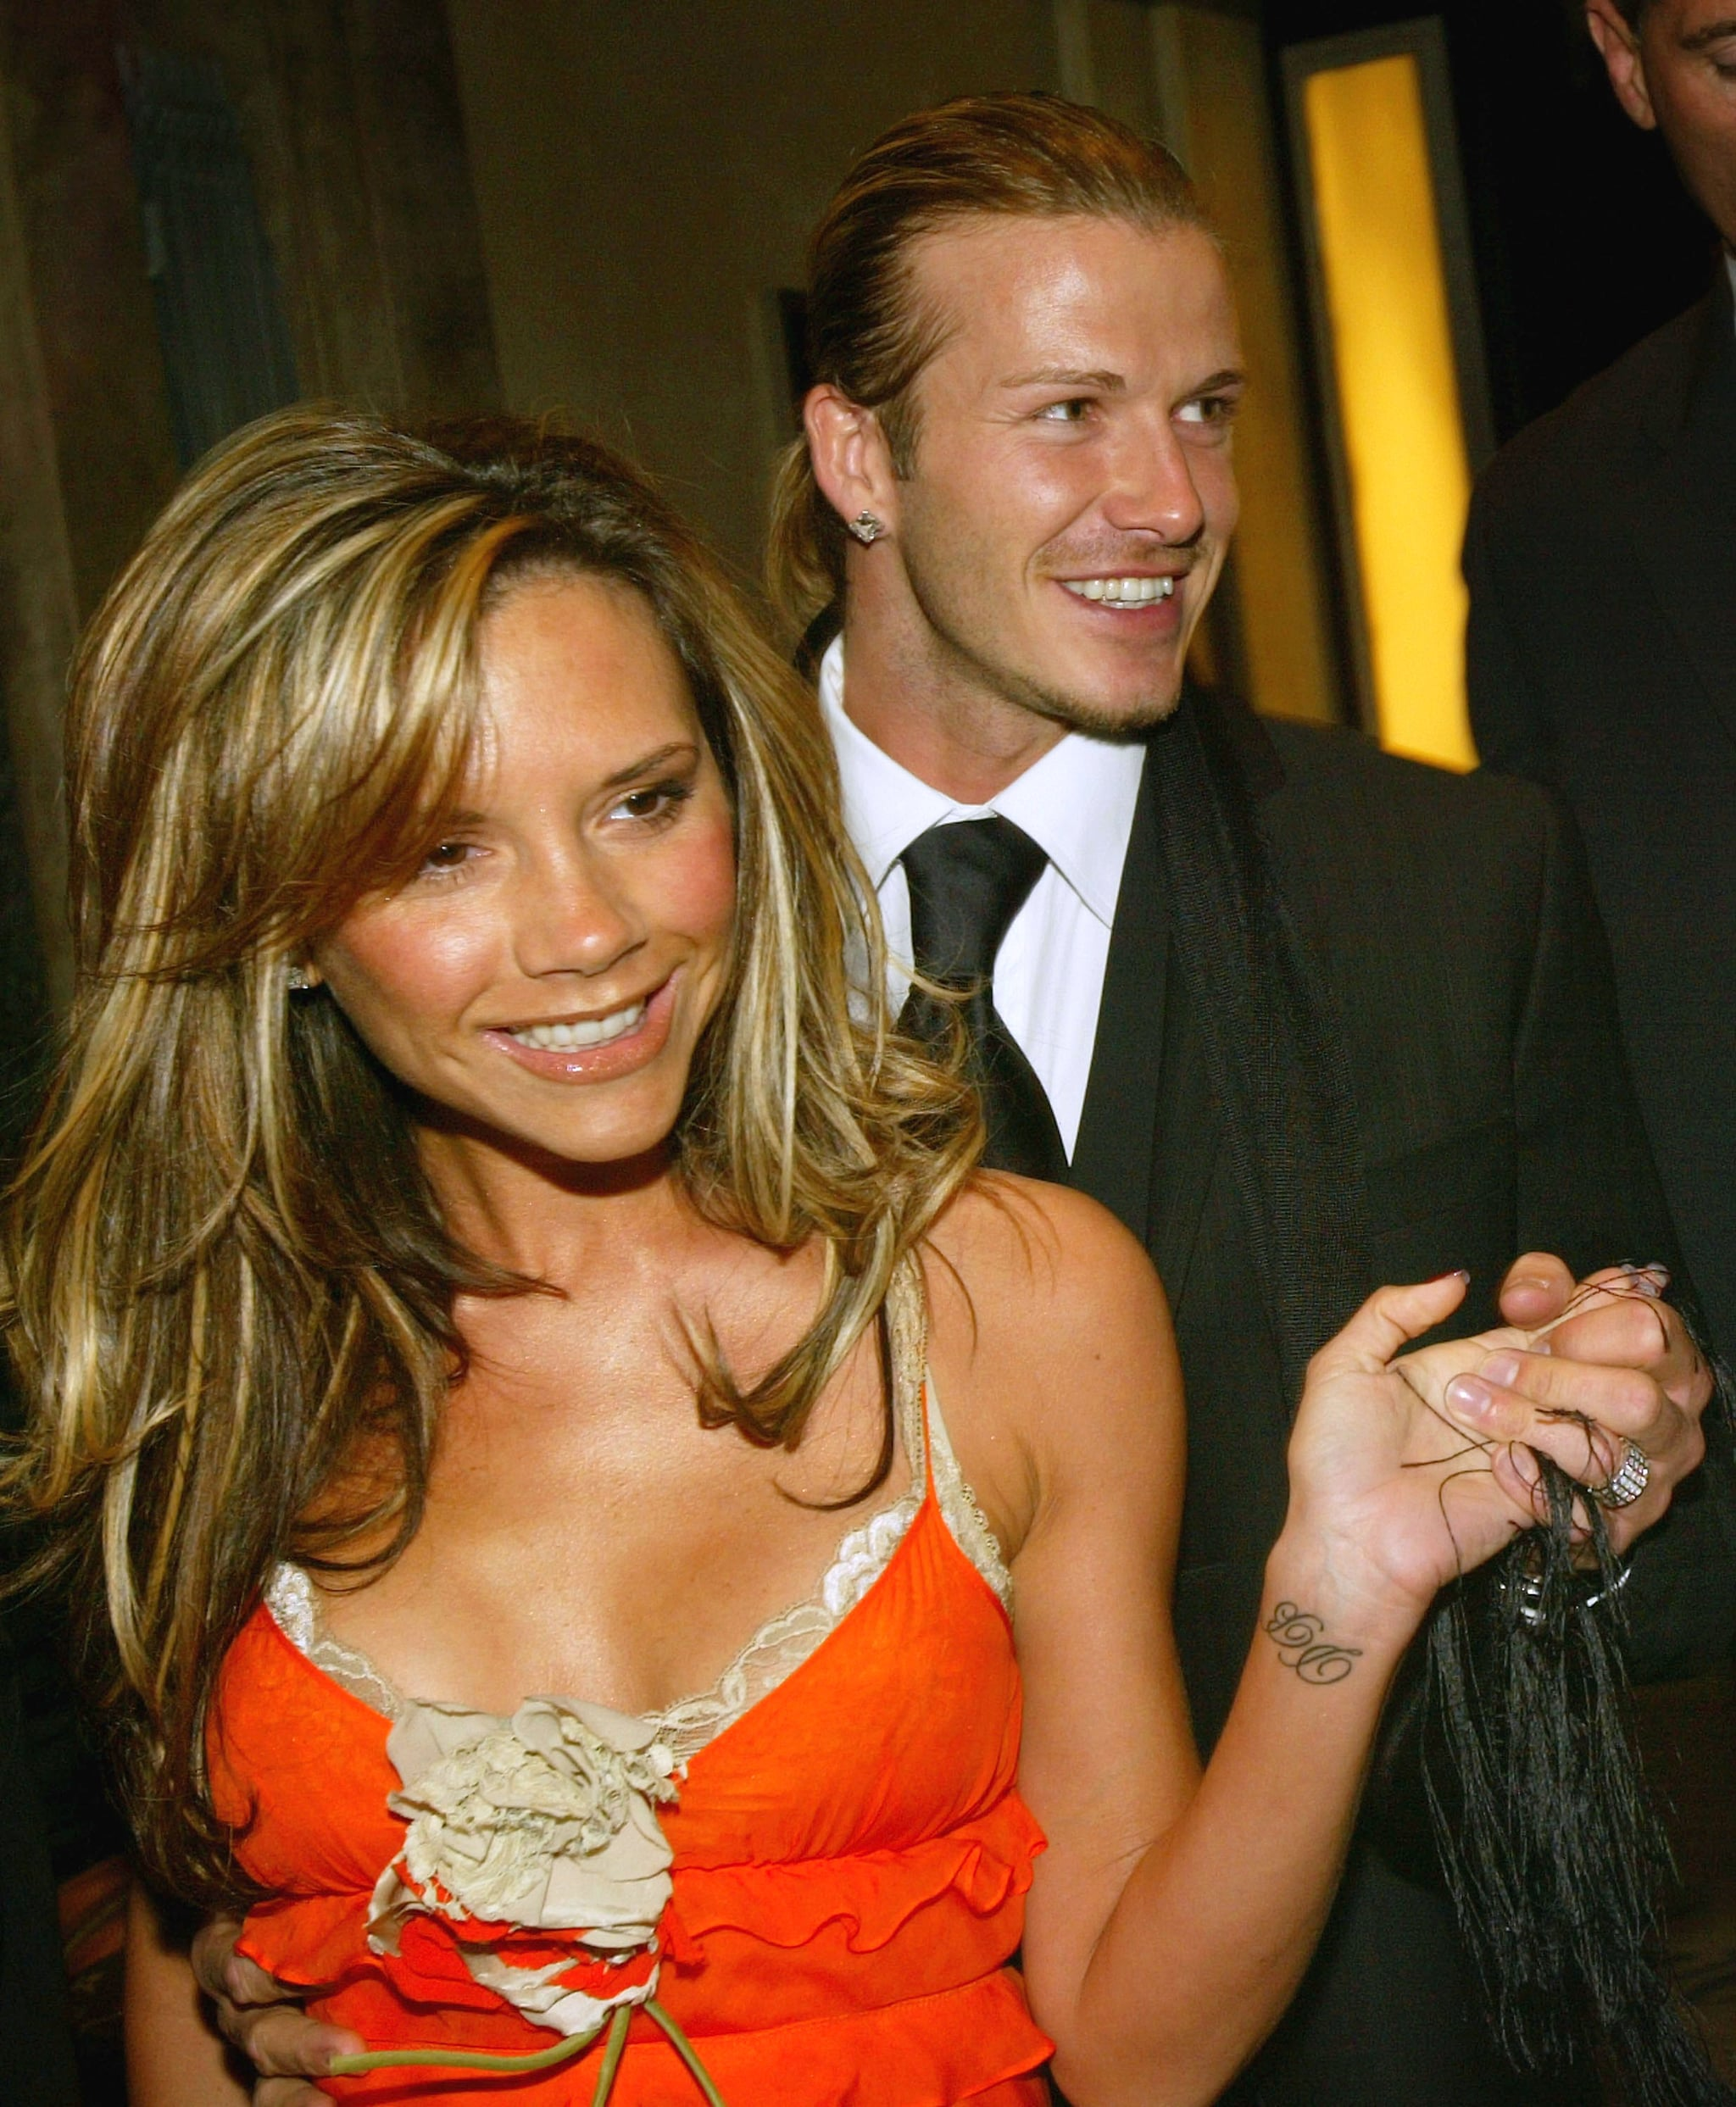 They were all smiles at Claridge's hotel in London in April 2004.